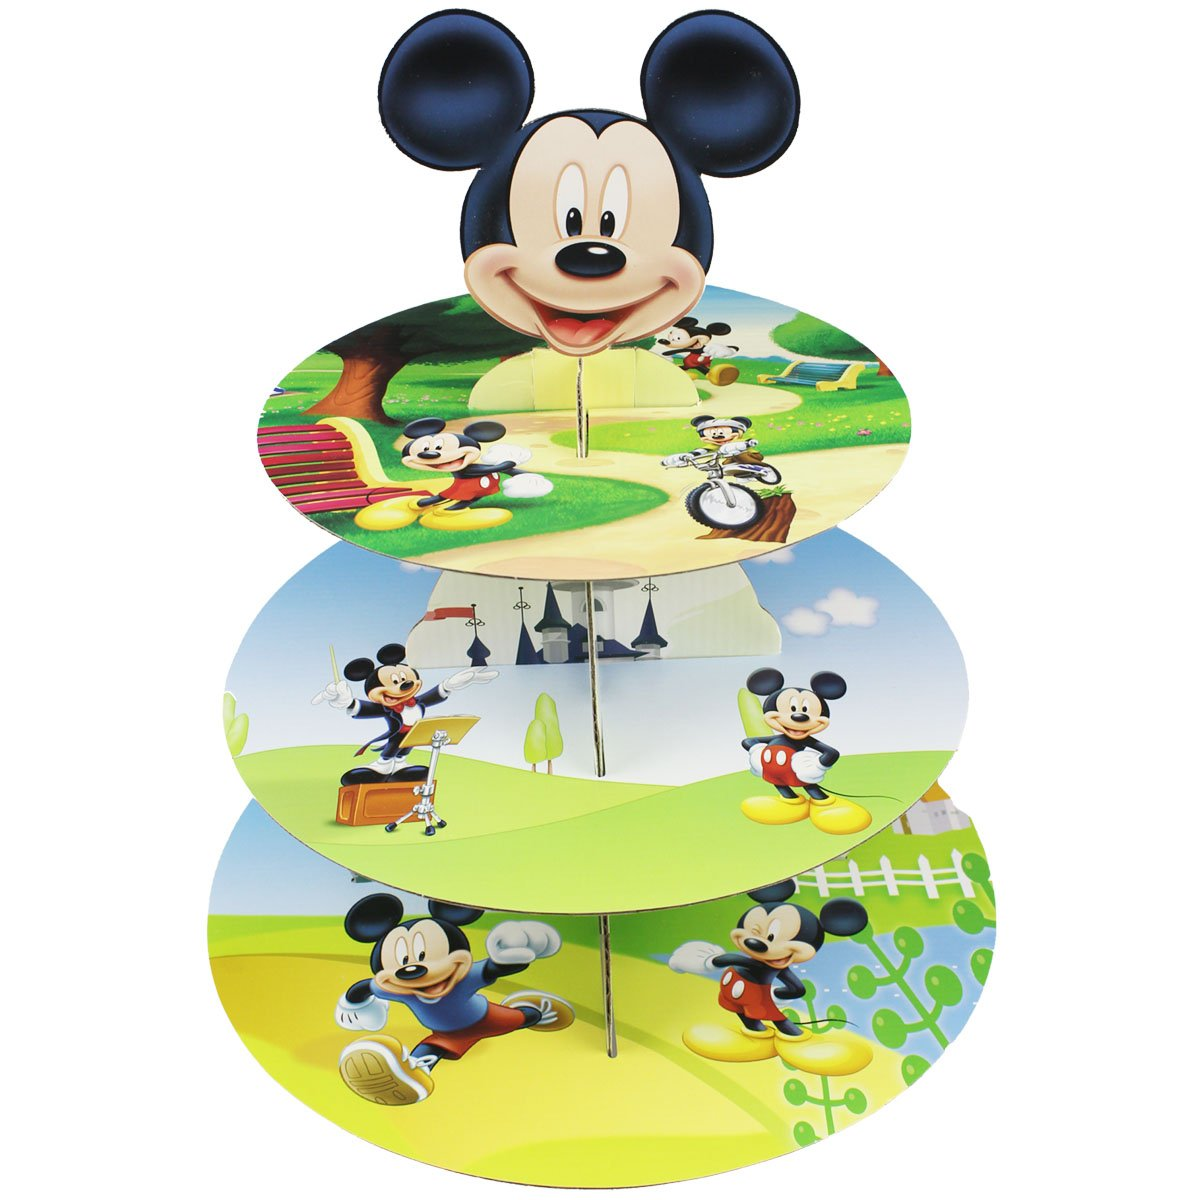 Betop House 3-Tire Mickey Mouse Themed Party Cupcake Dessert Stand